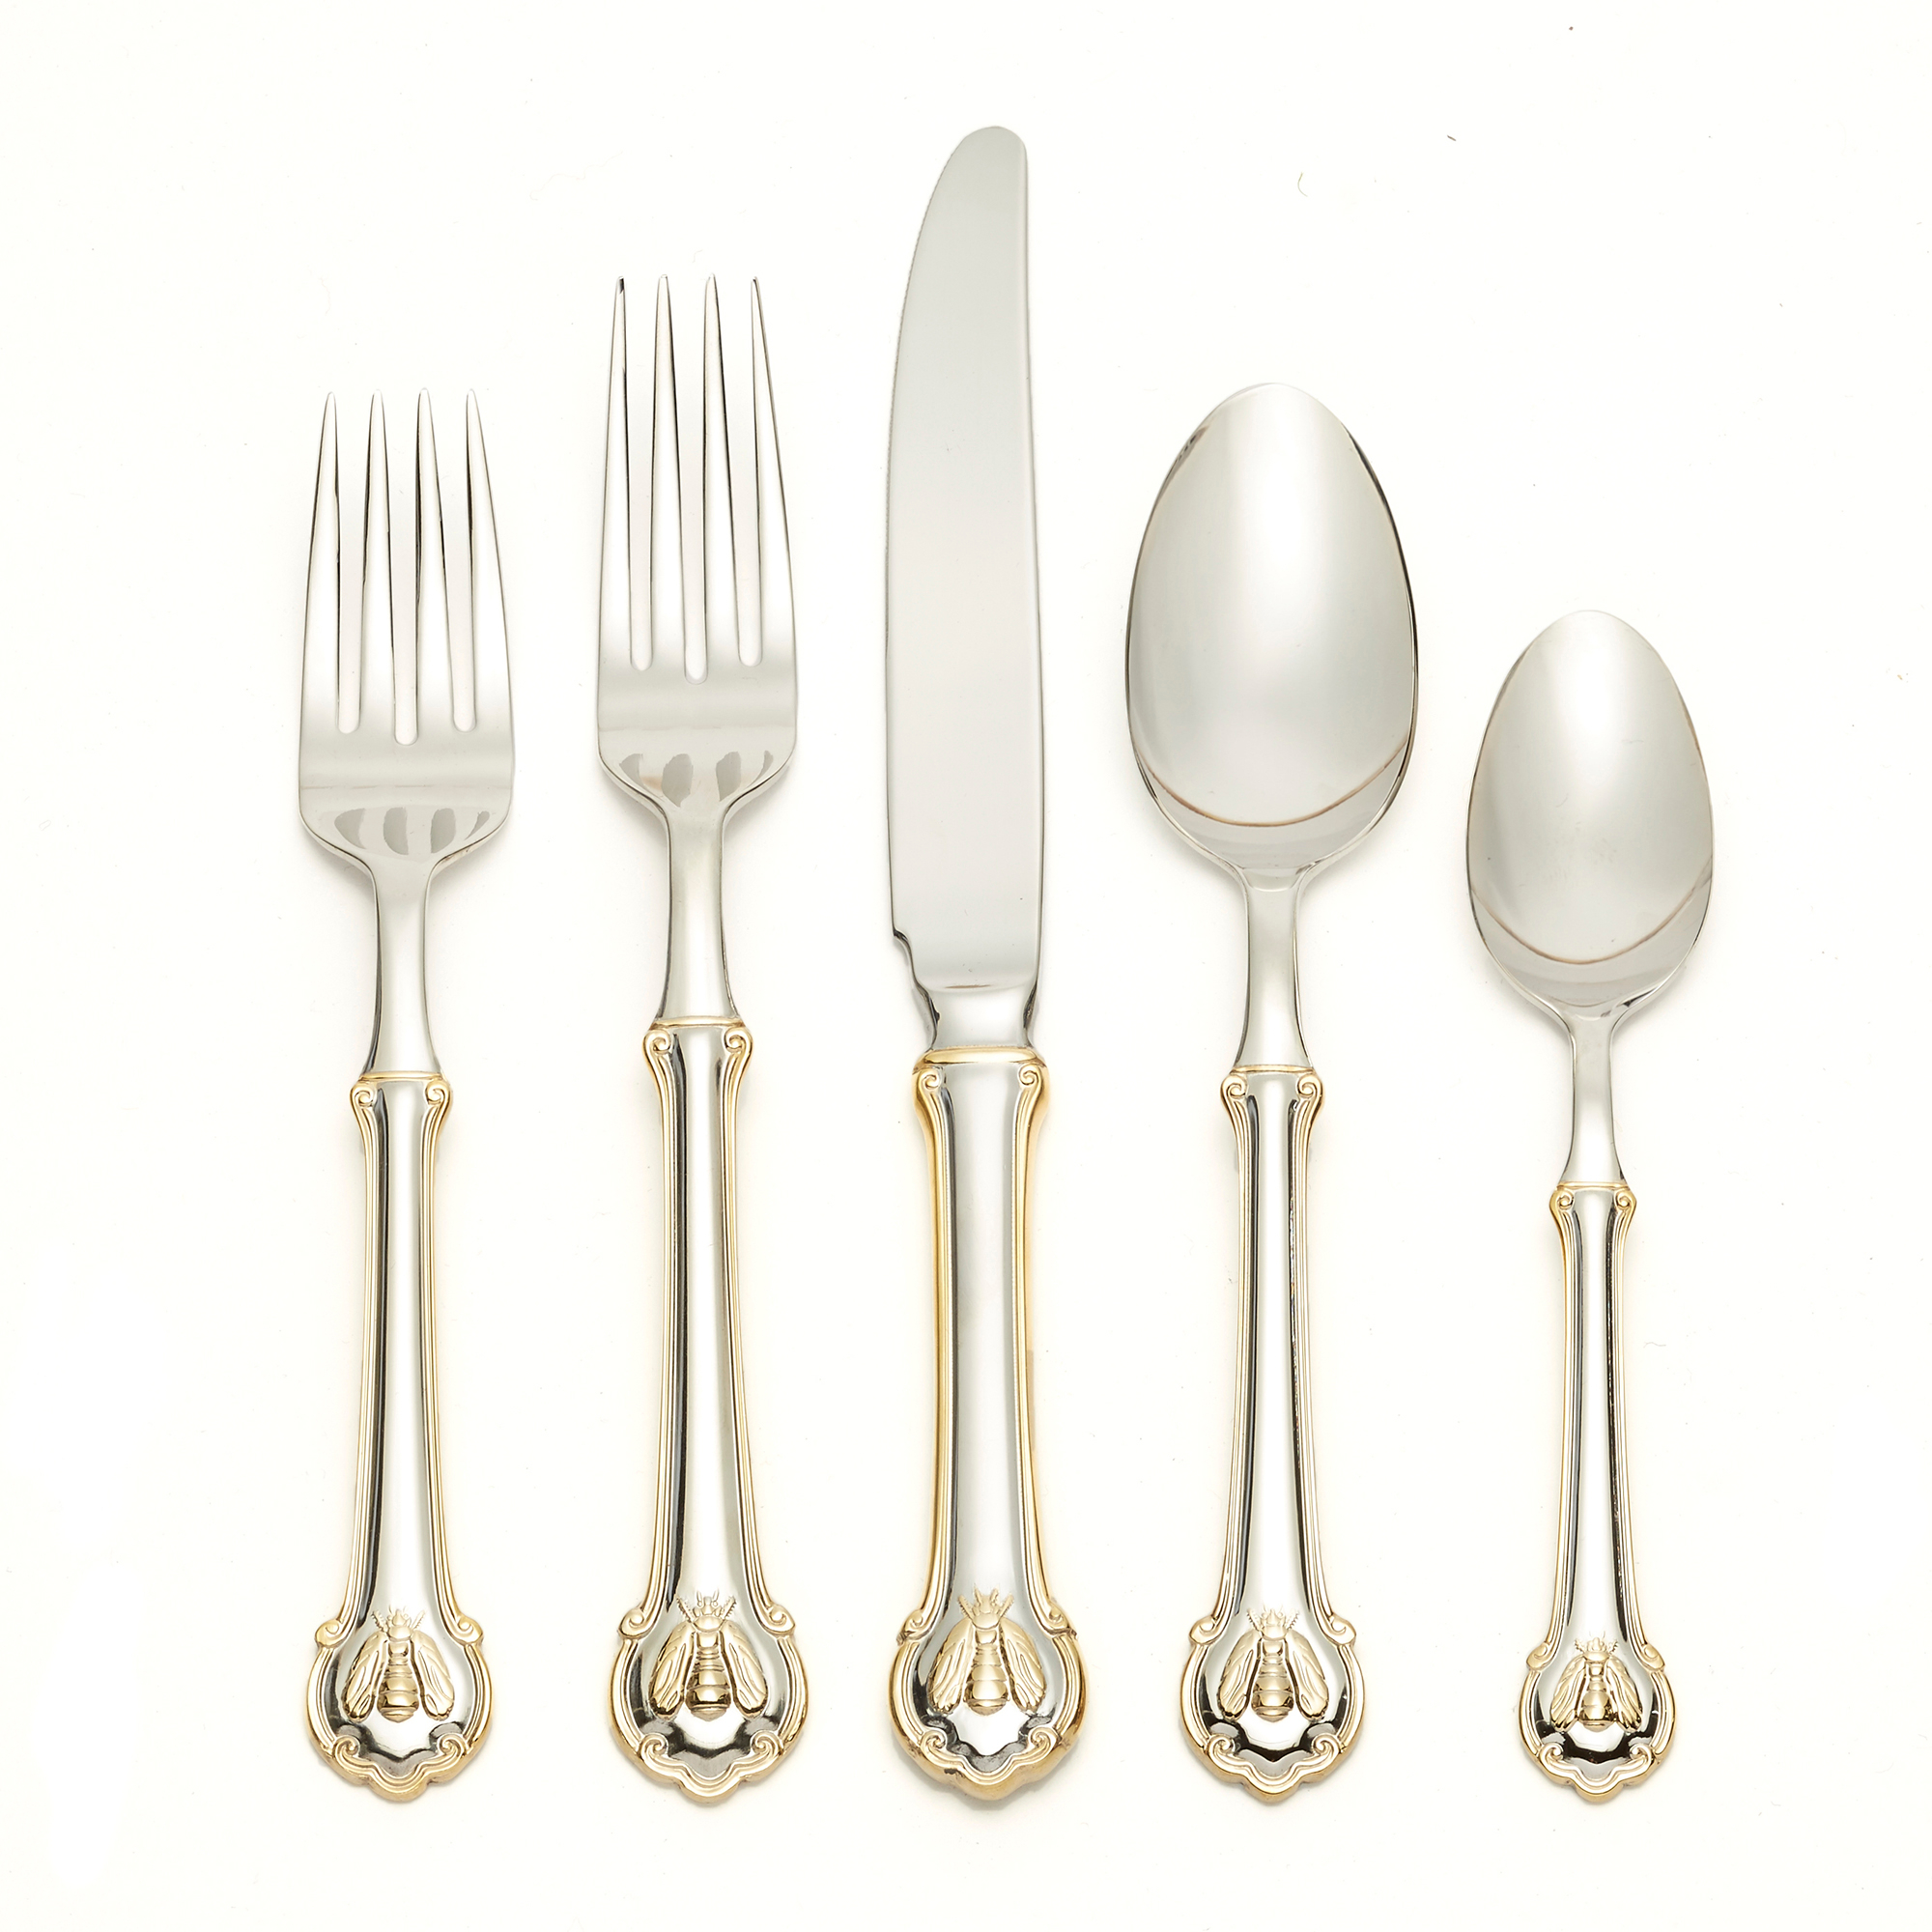 Wallace Napoleon Bee Flatware With Gold Trim